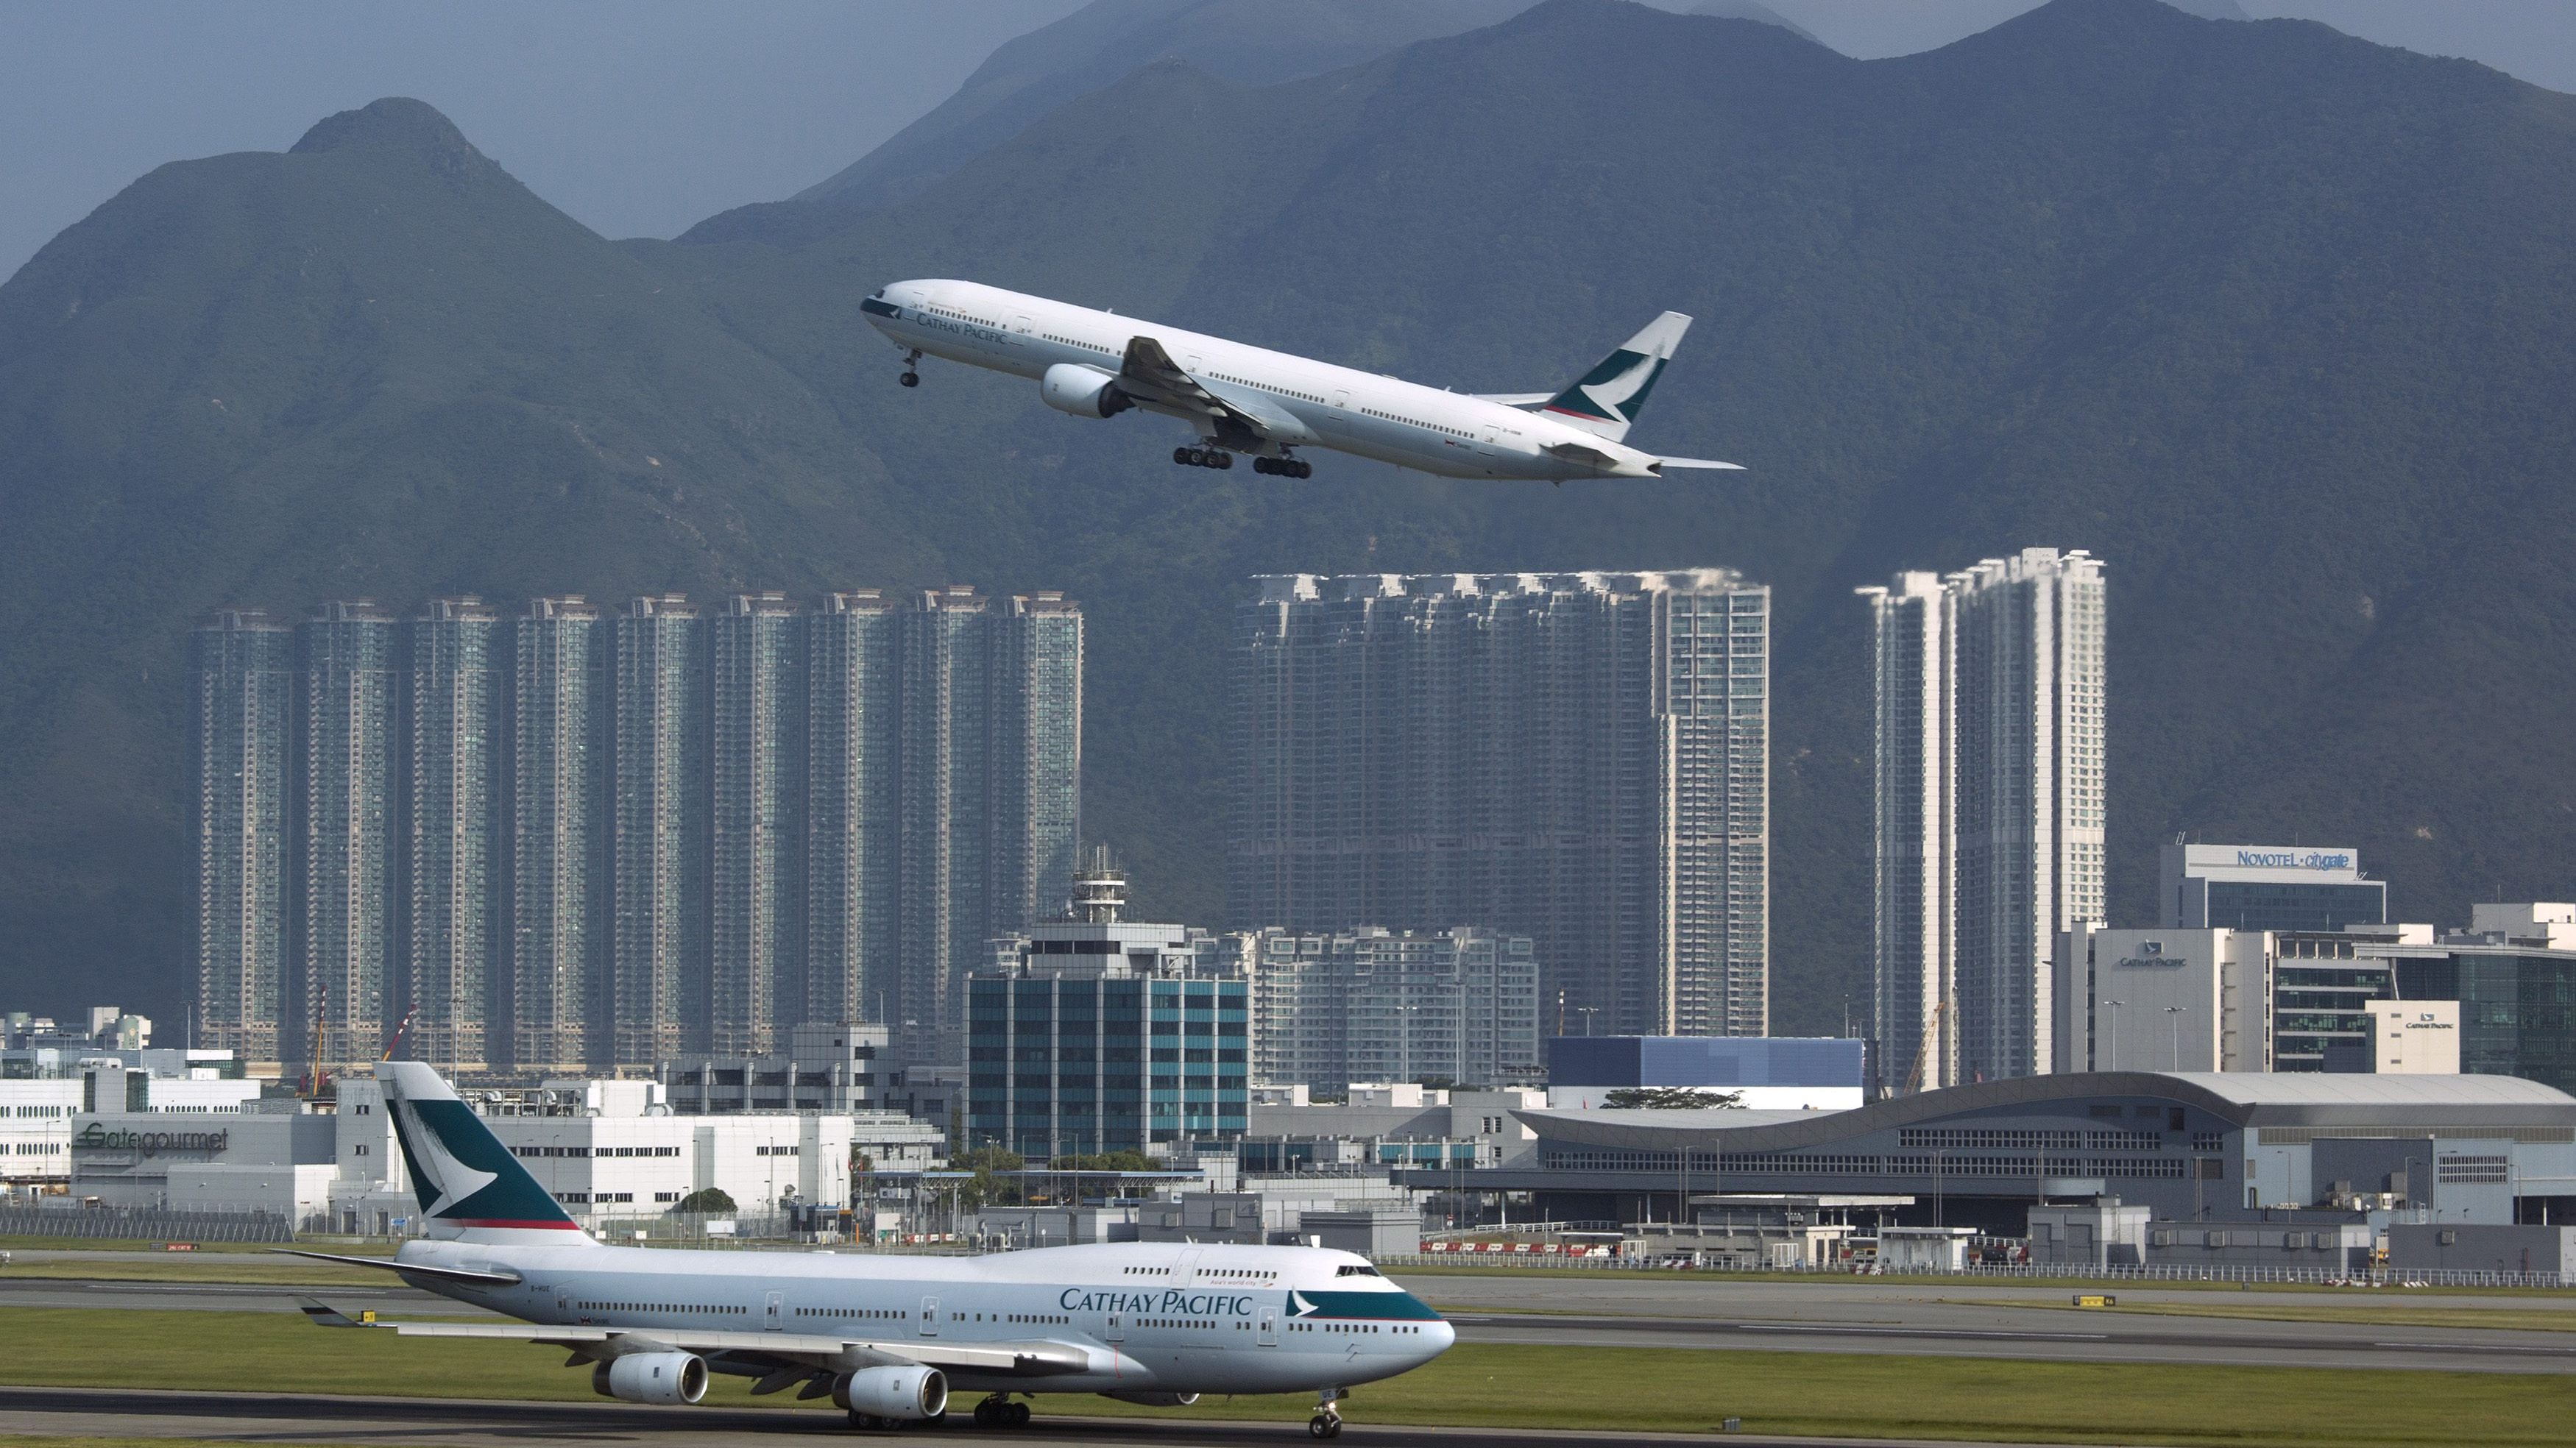 Cathay Pacific aiming to recruit 400 additional Customer Service Officers